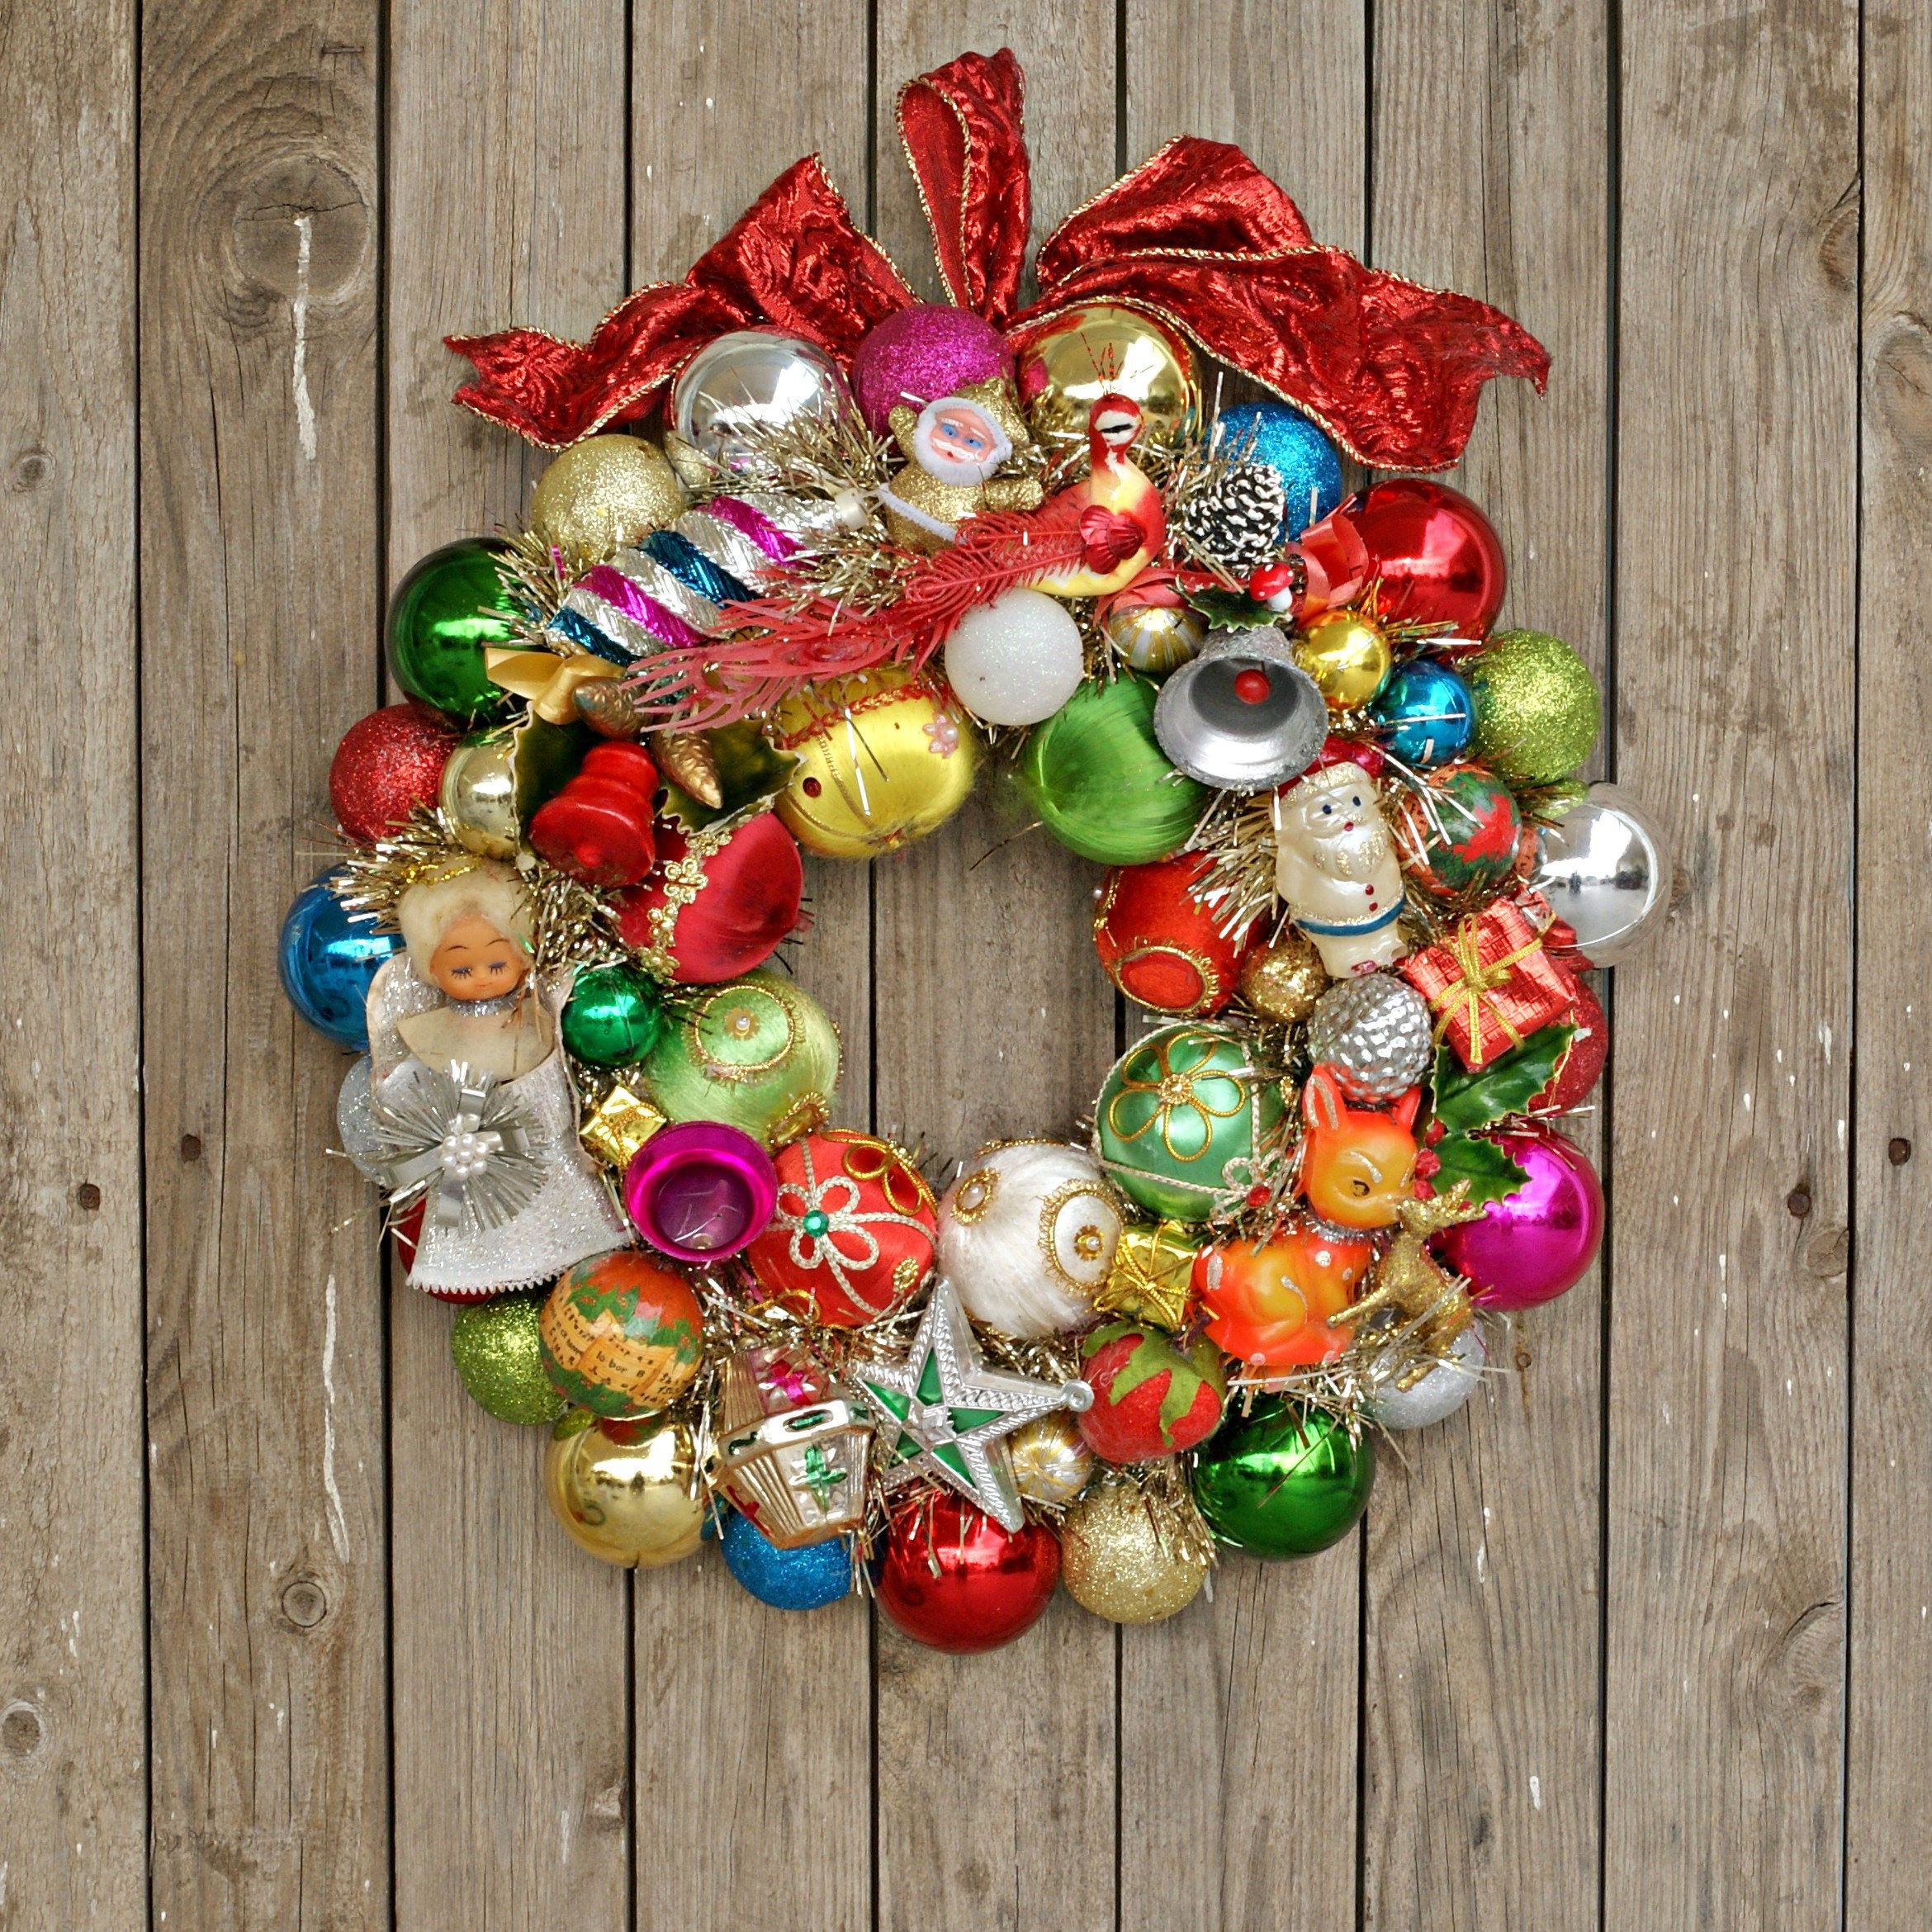 Christmas Wreaths For Front Door Vintage Christmas Decorations